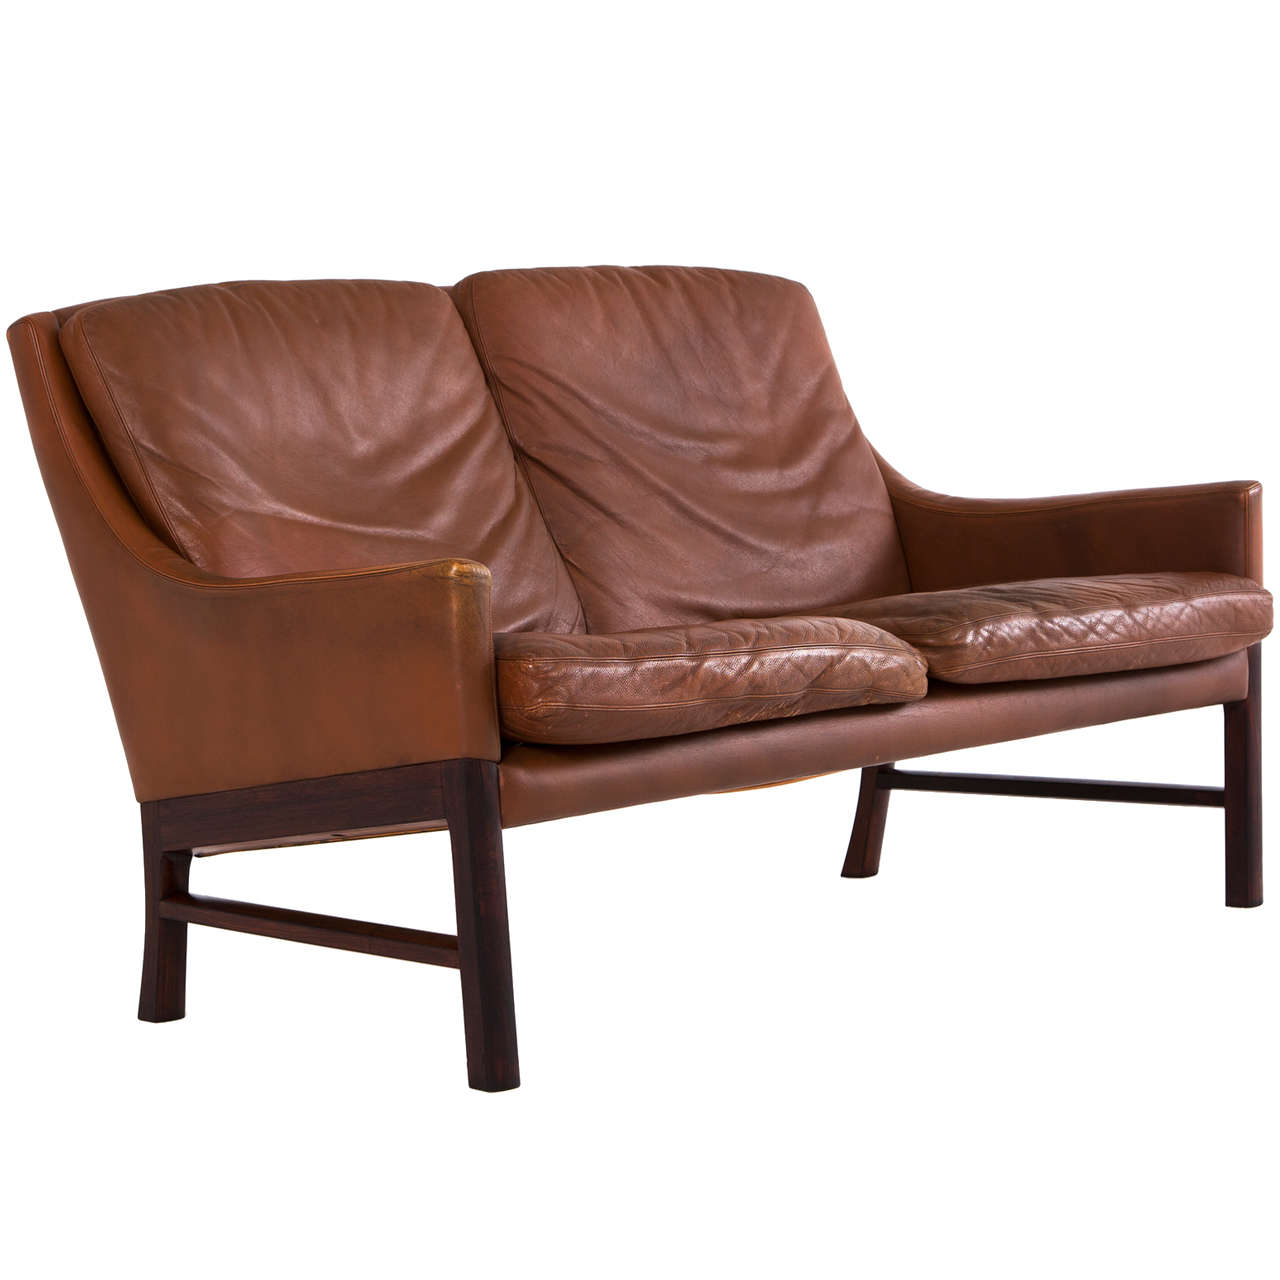 danish two seater sofa in original cognac leather for sale at 1stdibs. Black Bedroom Furniture Sets. Home Design Ideas